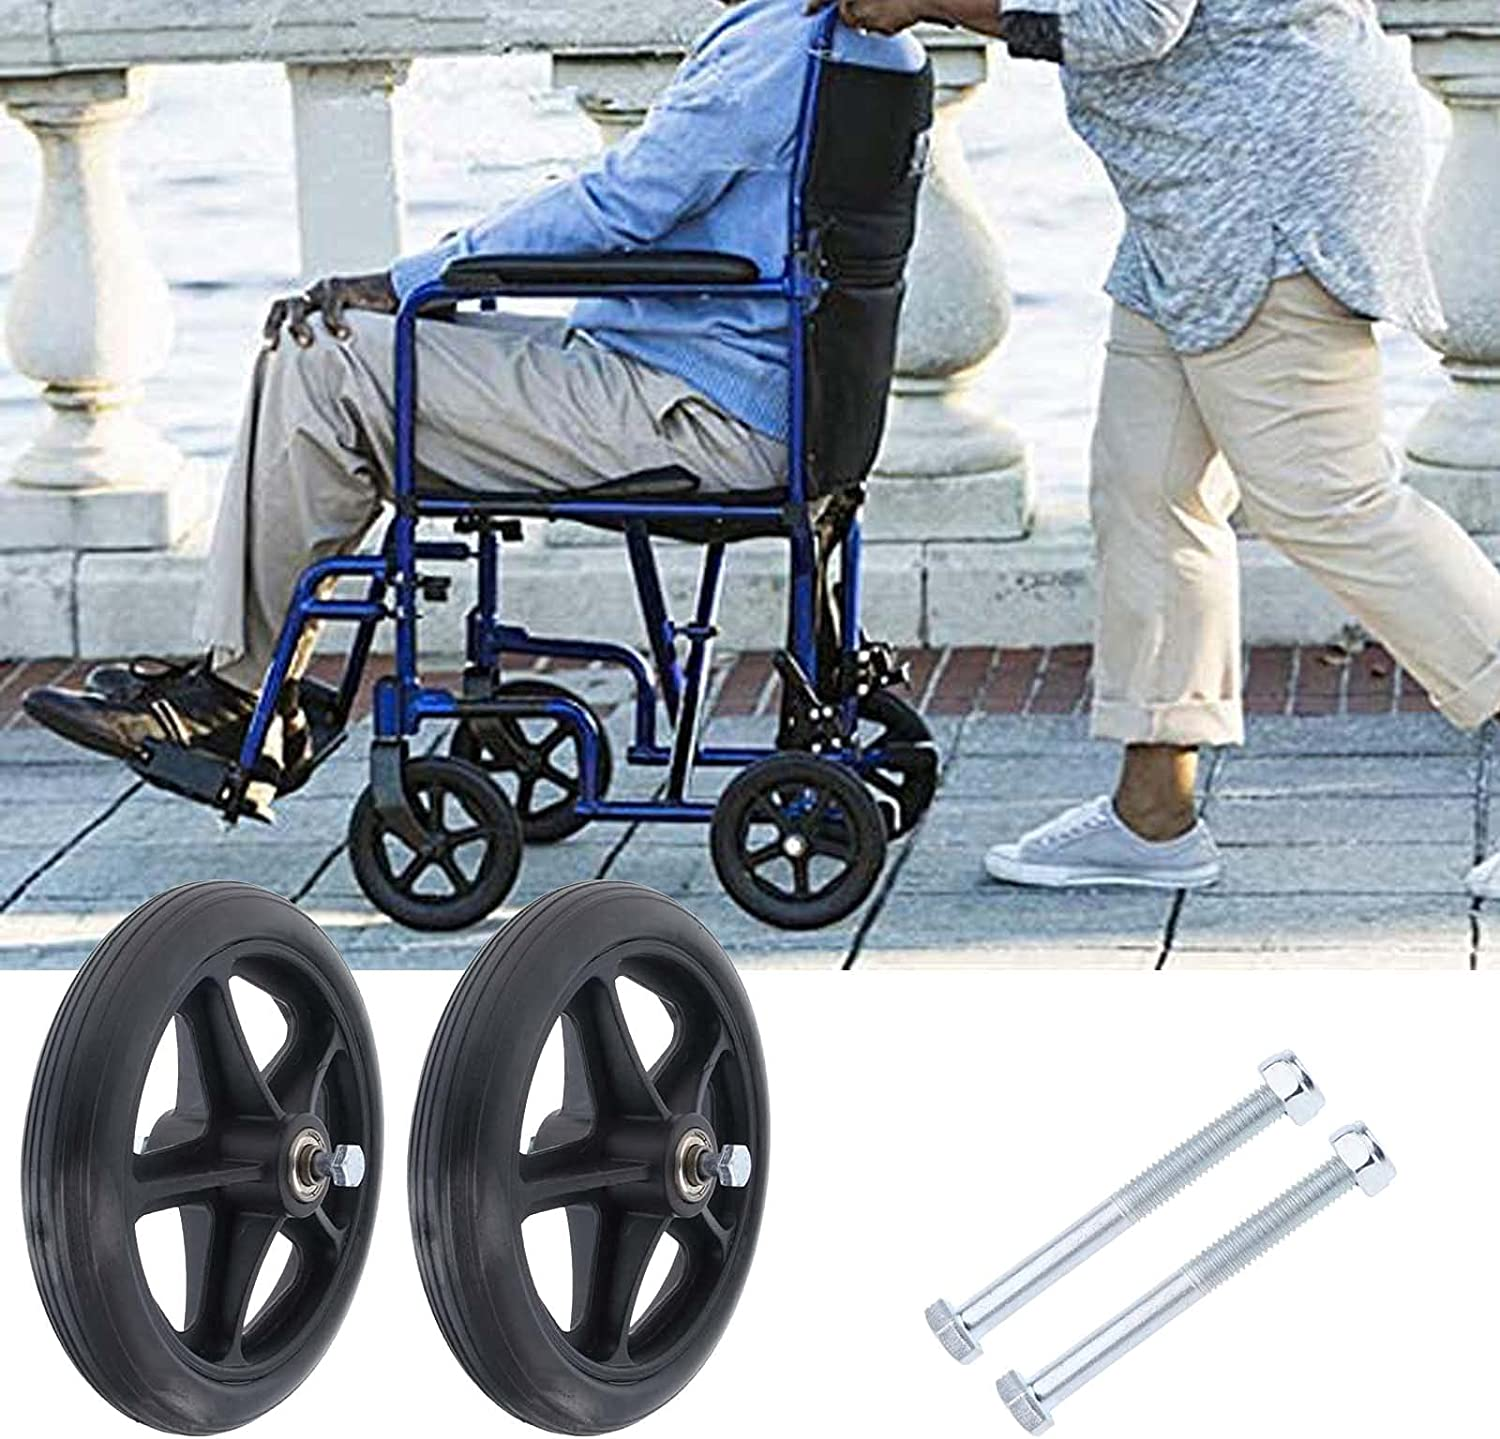 A-bize 2Pcs Strong and Durable Wa Wheel 1 year warranty Caster Front Max 83% OFF Wheelchair